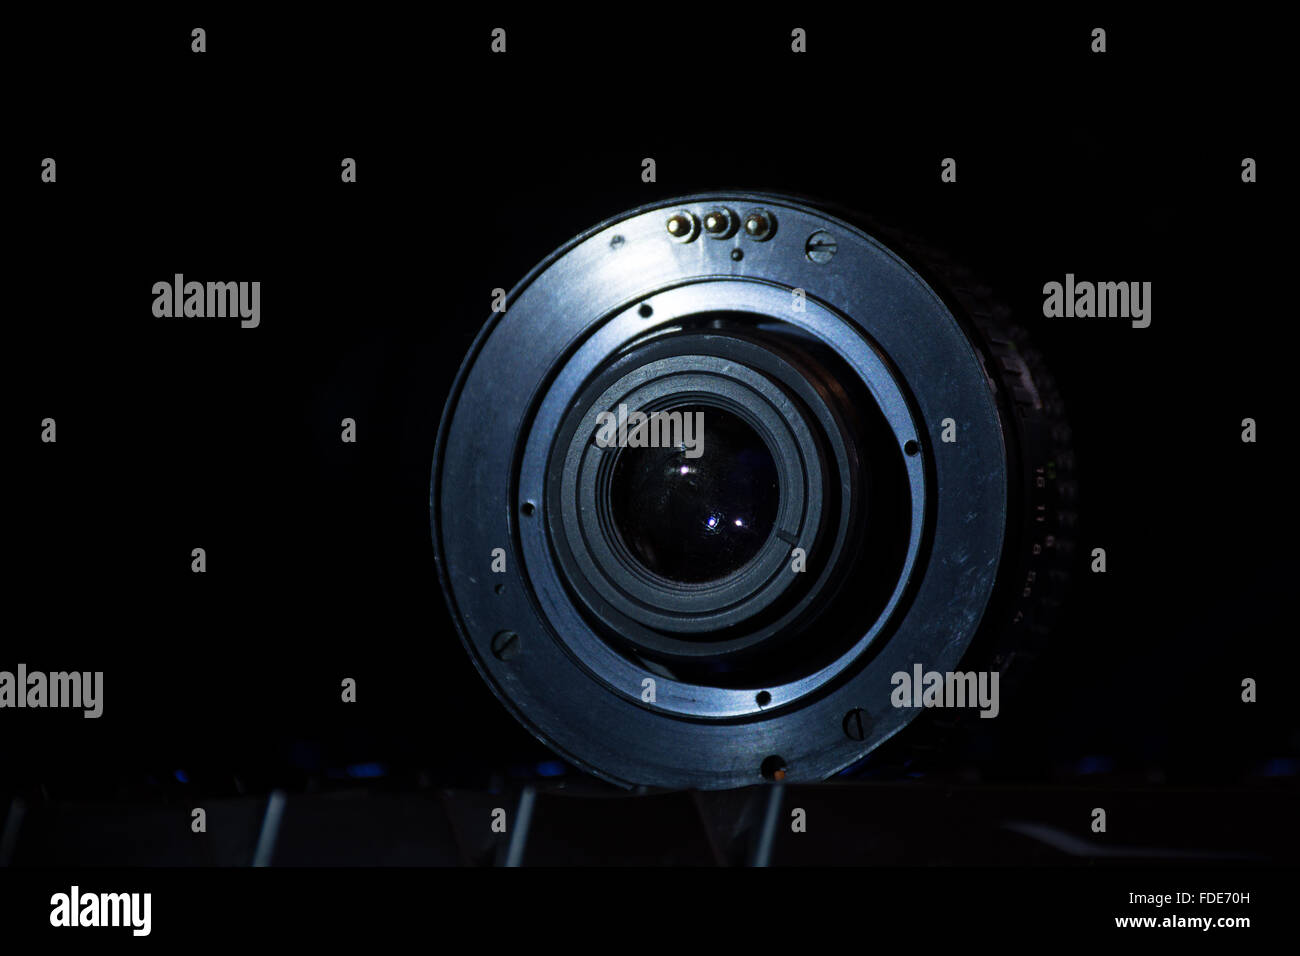 A camera lens on a black background viewed from the side of the mount. - Stock Image